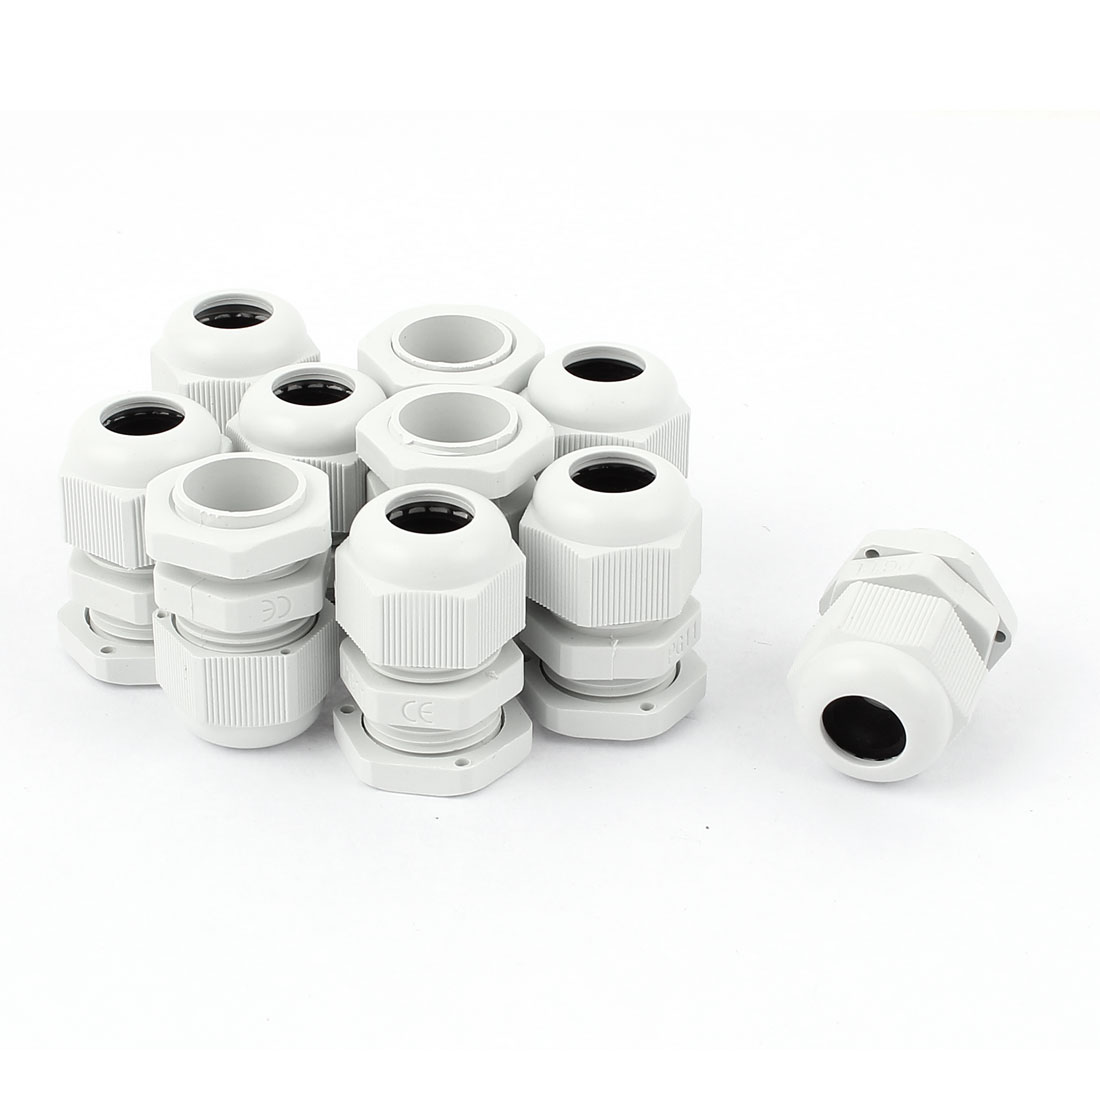 10 Pcs Plastic PG11 Waterproof Cable Glands Connectors White